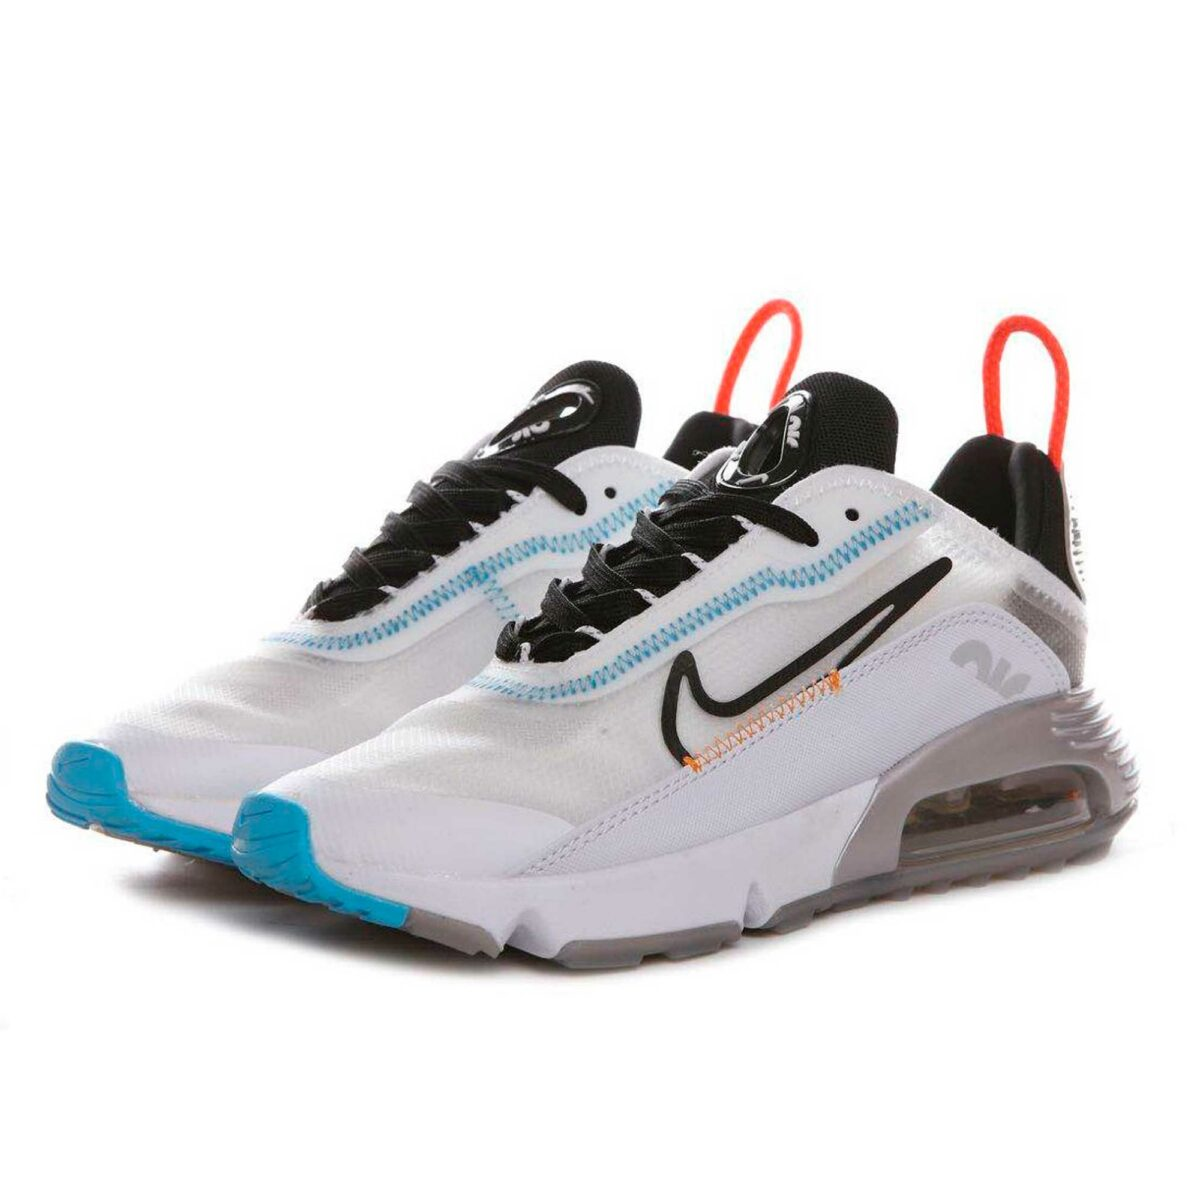 nike air max 2090 pure platinum CT7698_007 купить